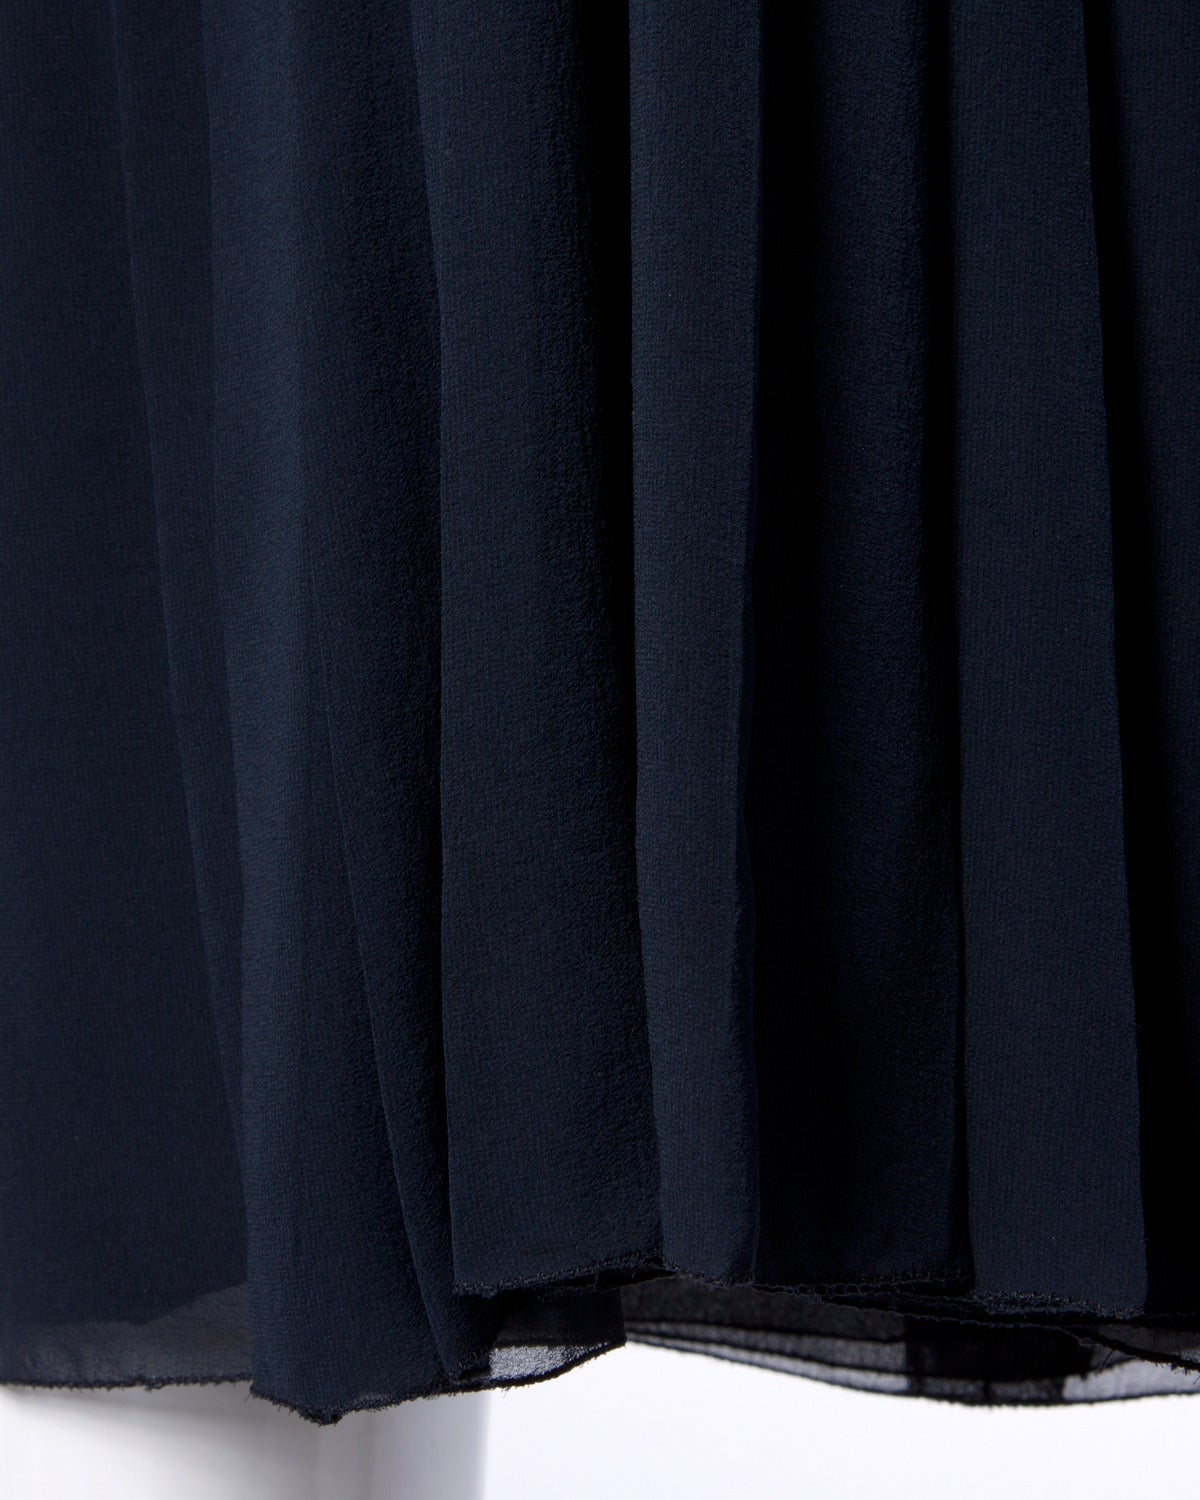 Chanel Vintage Navy Blue Pleated Silk Chiffon Skirt 5